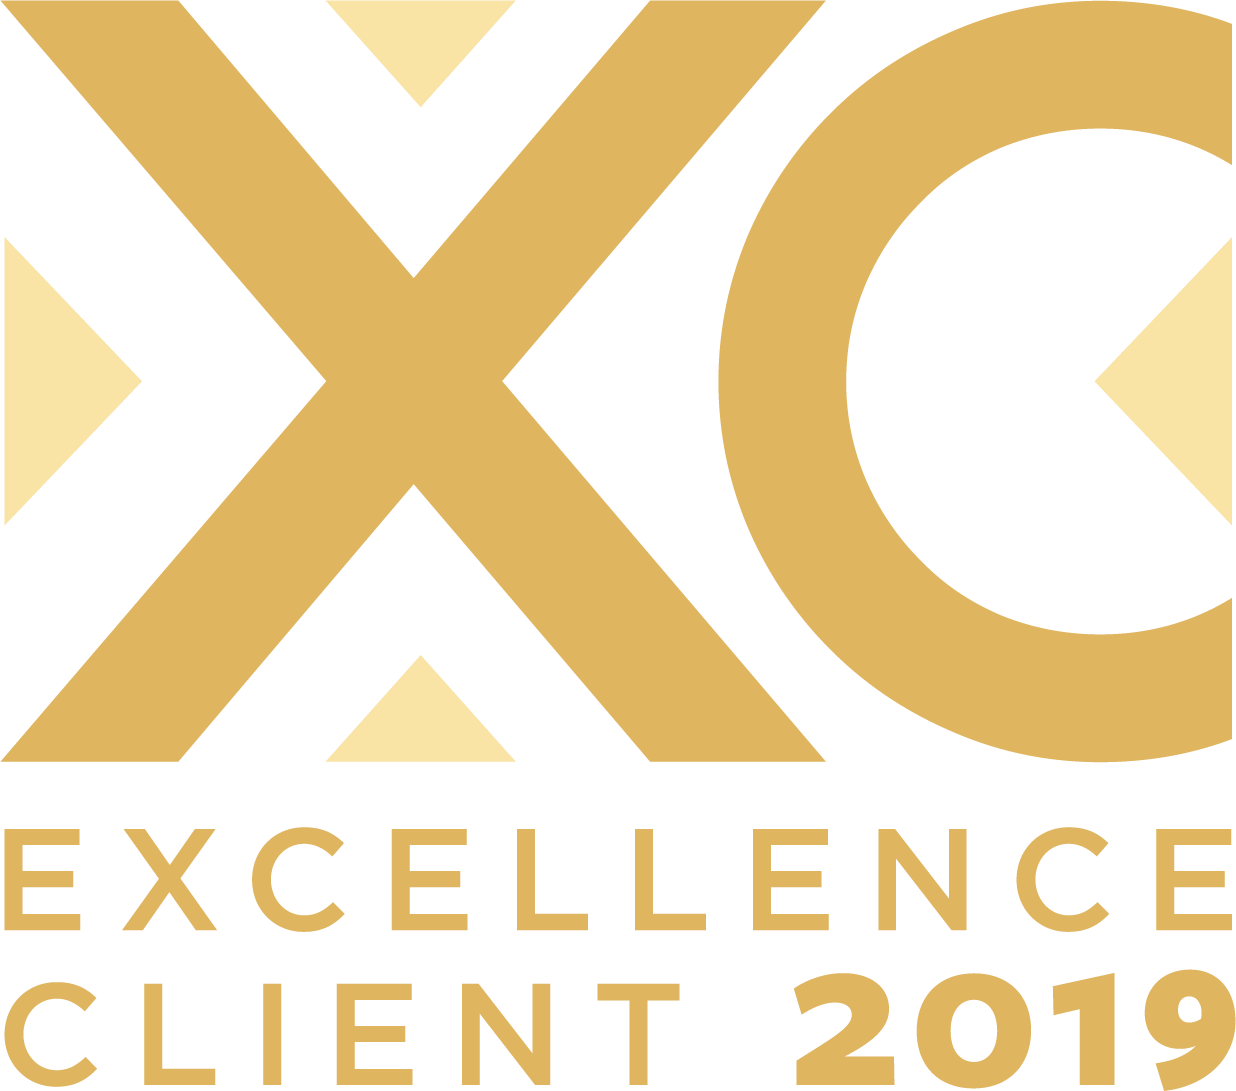 Excellence client 2019